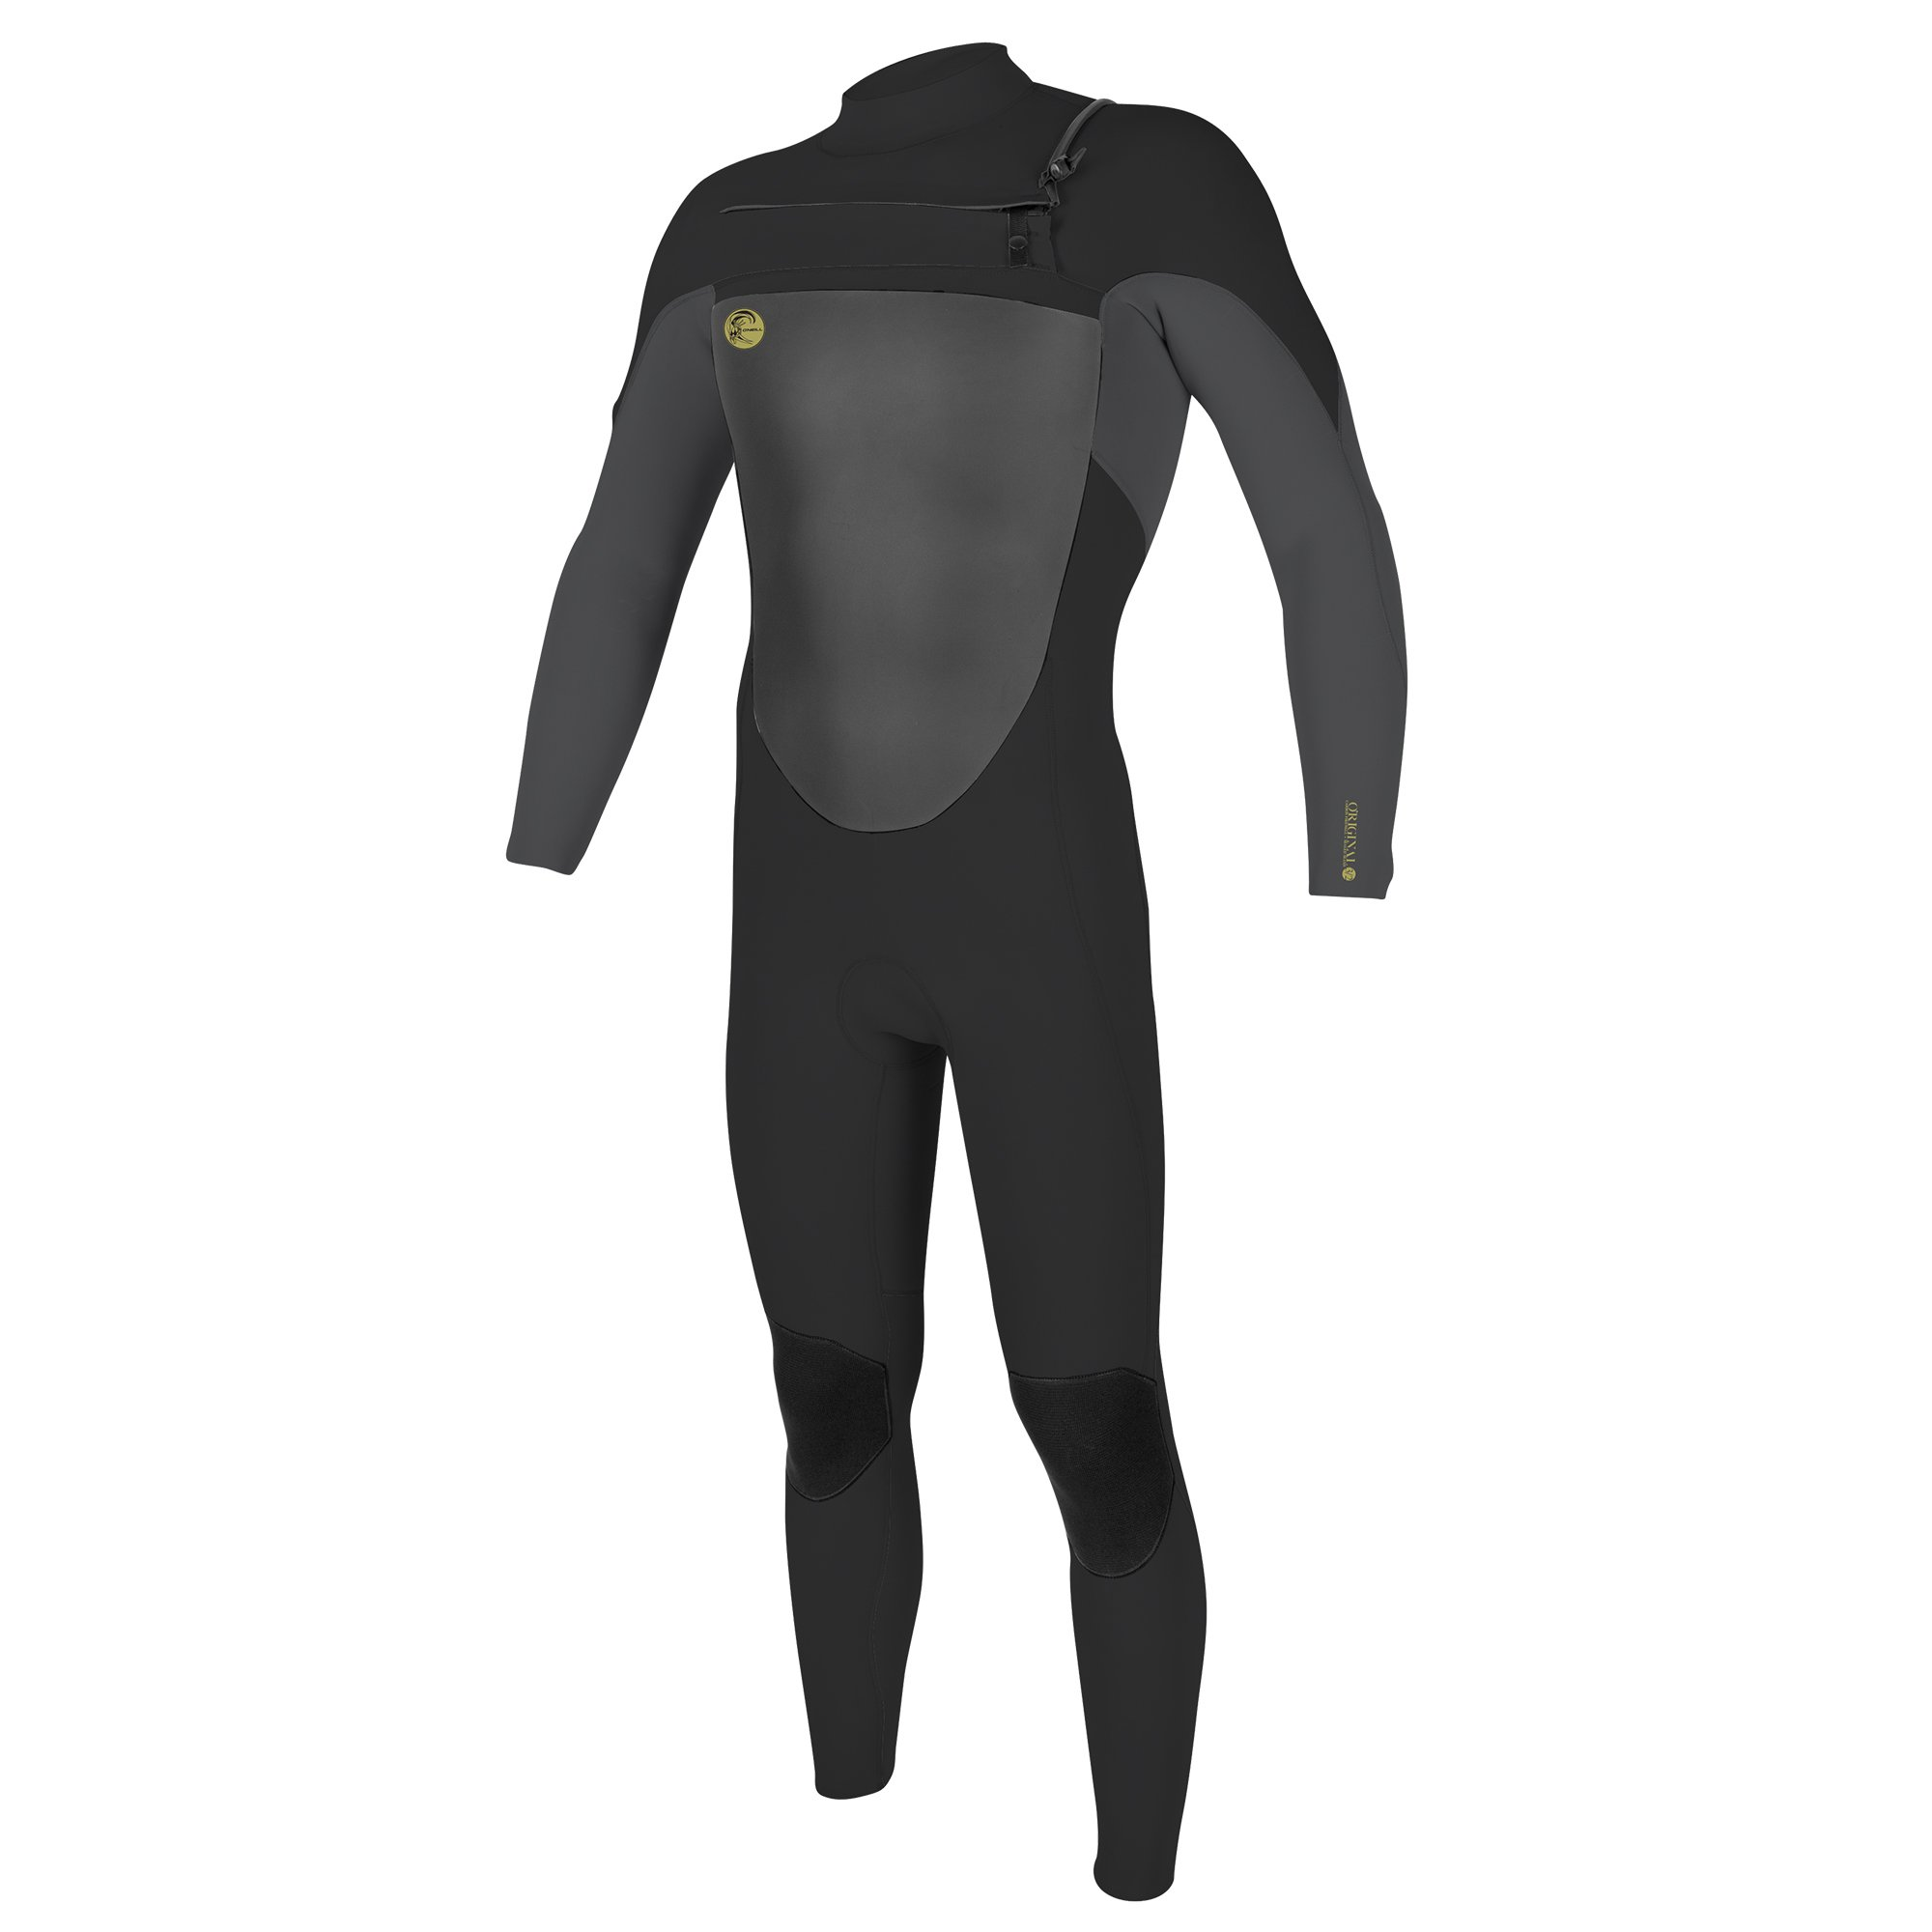 O'Neill Men's O'Riginal 4/3mm Chest Zip Full Wetsuit, Oil/Smoke, Small